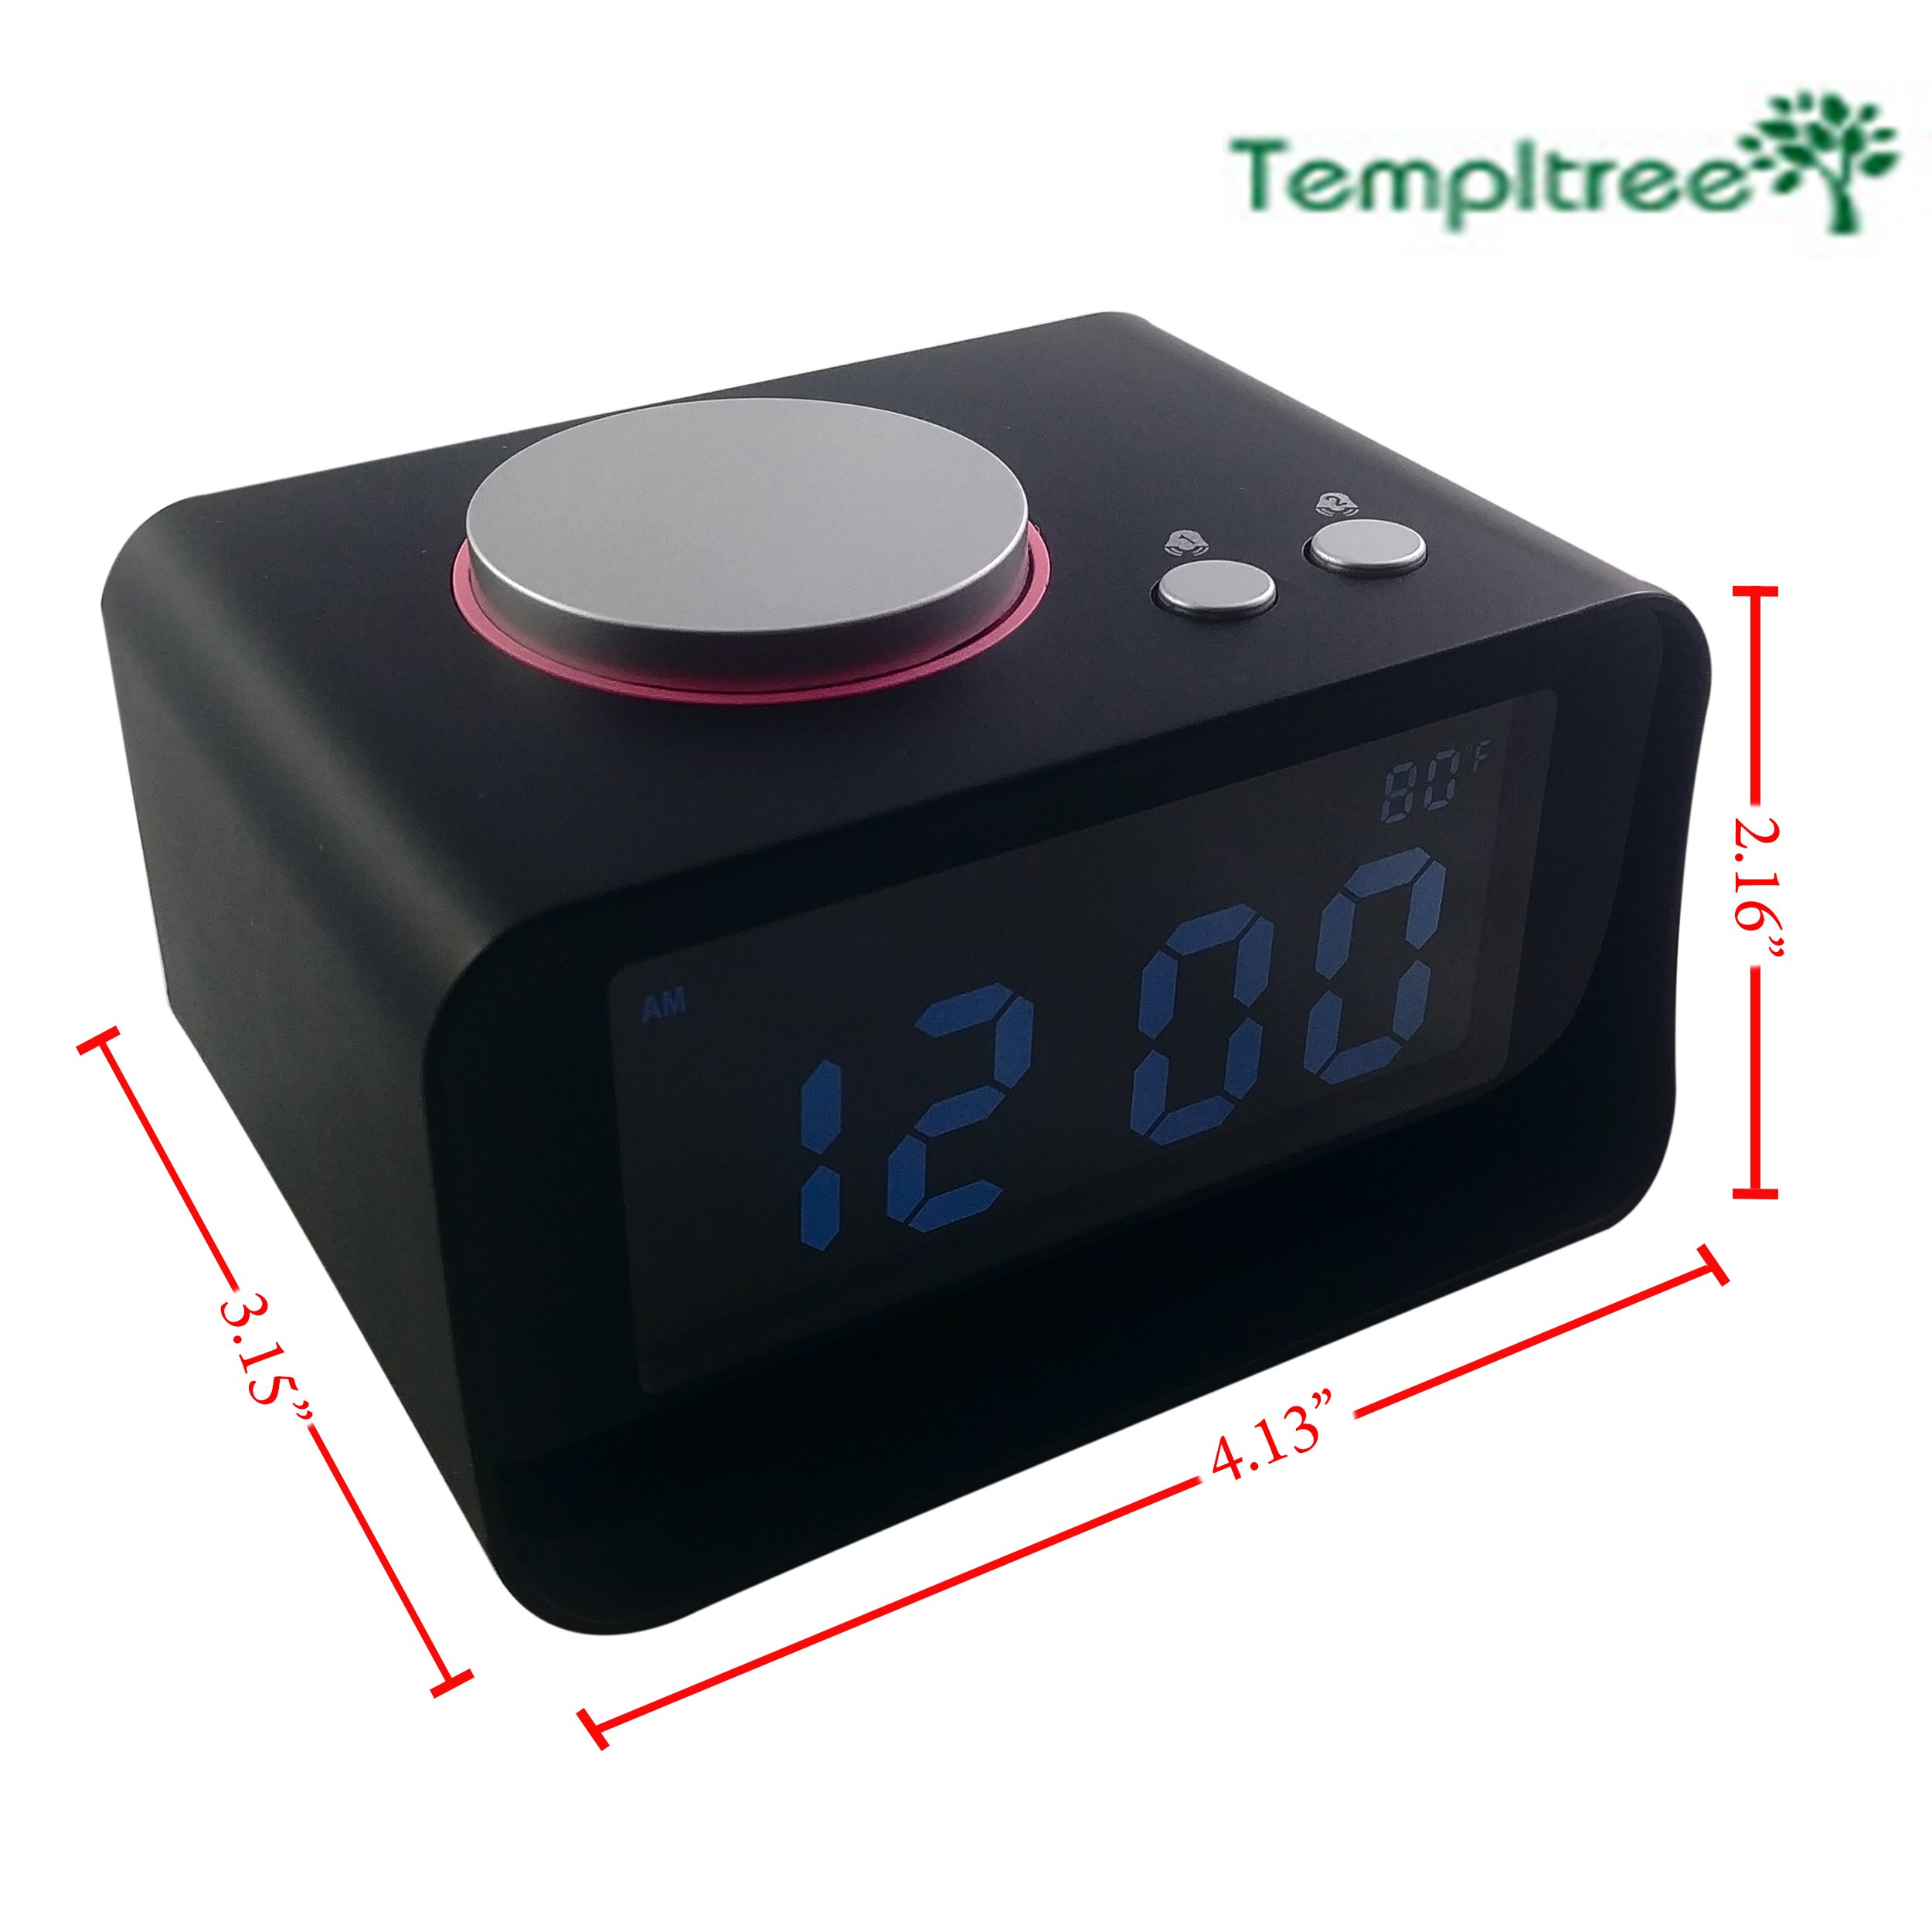 Templtree Hotel Alarm Clock, FM Radio, Dual USB Charging,Snooze Function, Aux in, and 5 Levels of Brightness